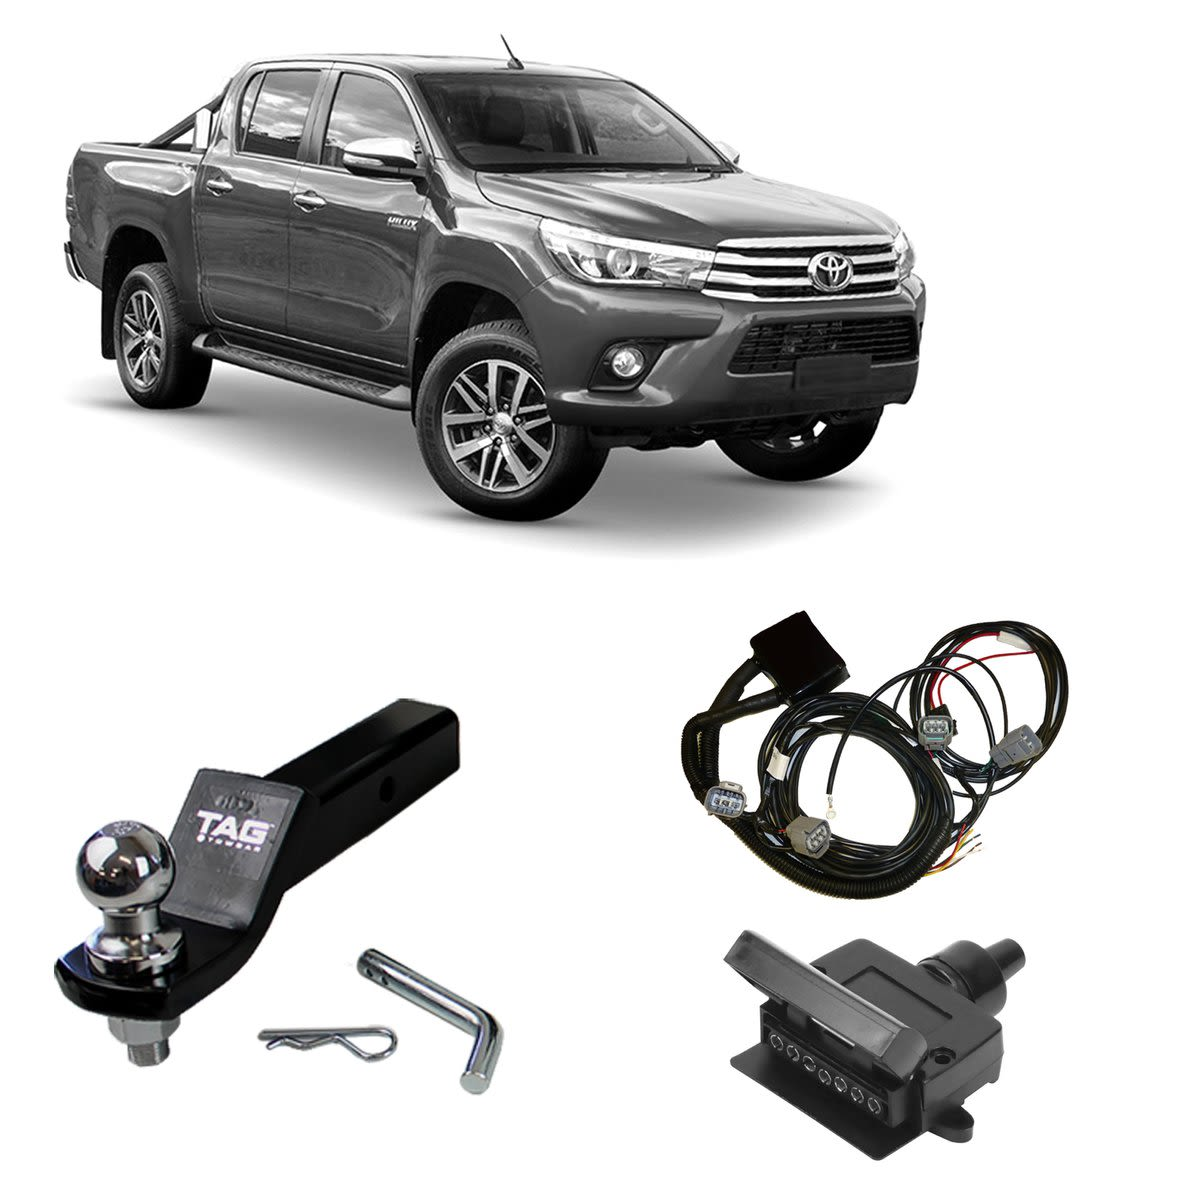 TAG Towbar Lugs Direct Fit to suit Toyota Hilux (04/2018 - on) - Direct Fit ECU